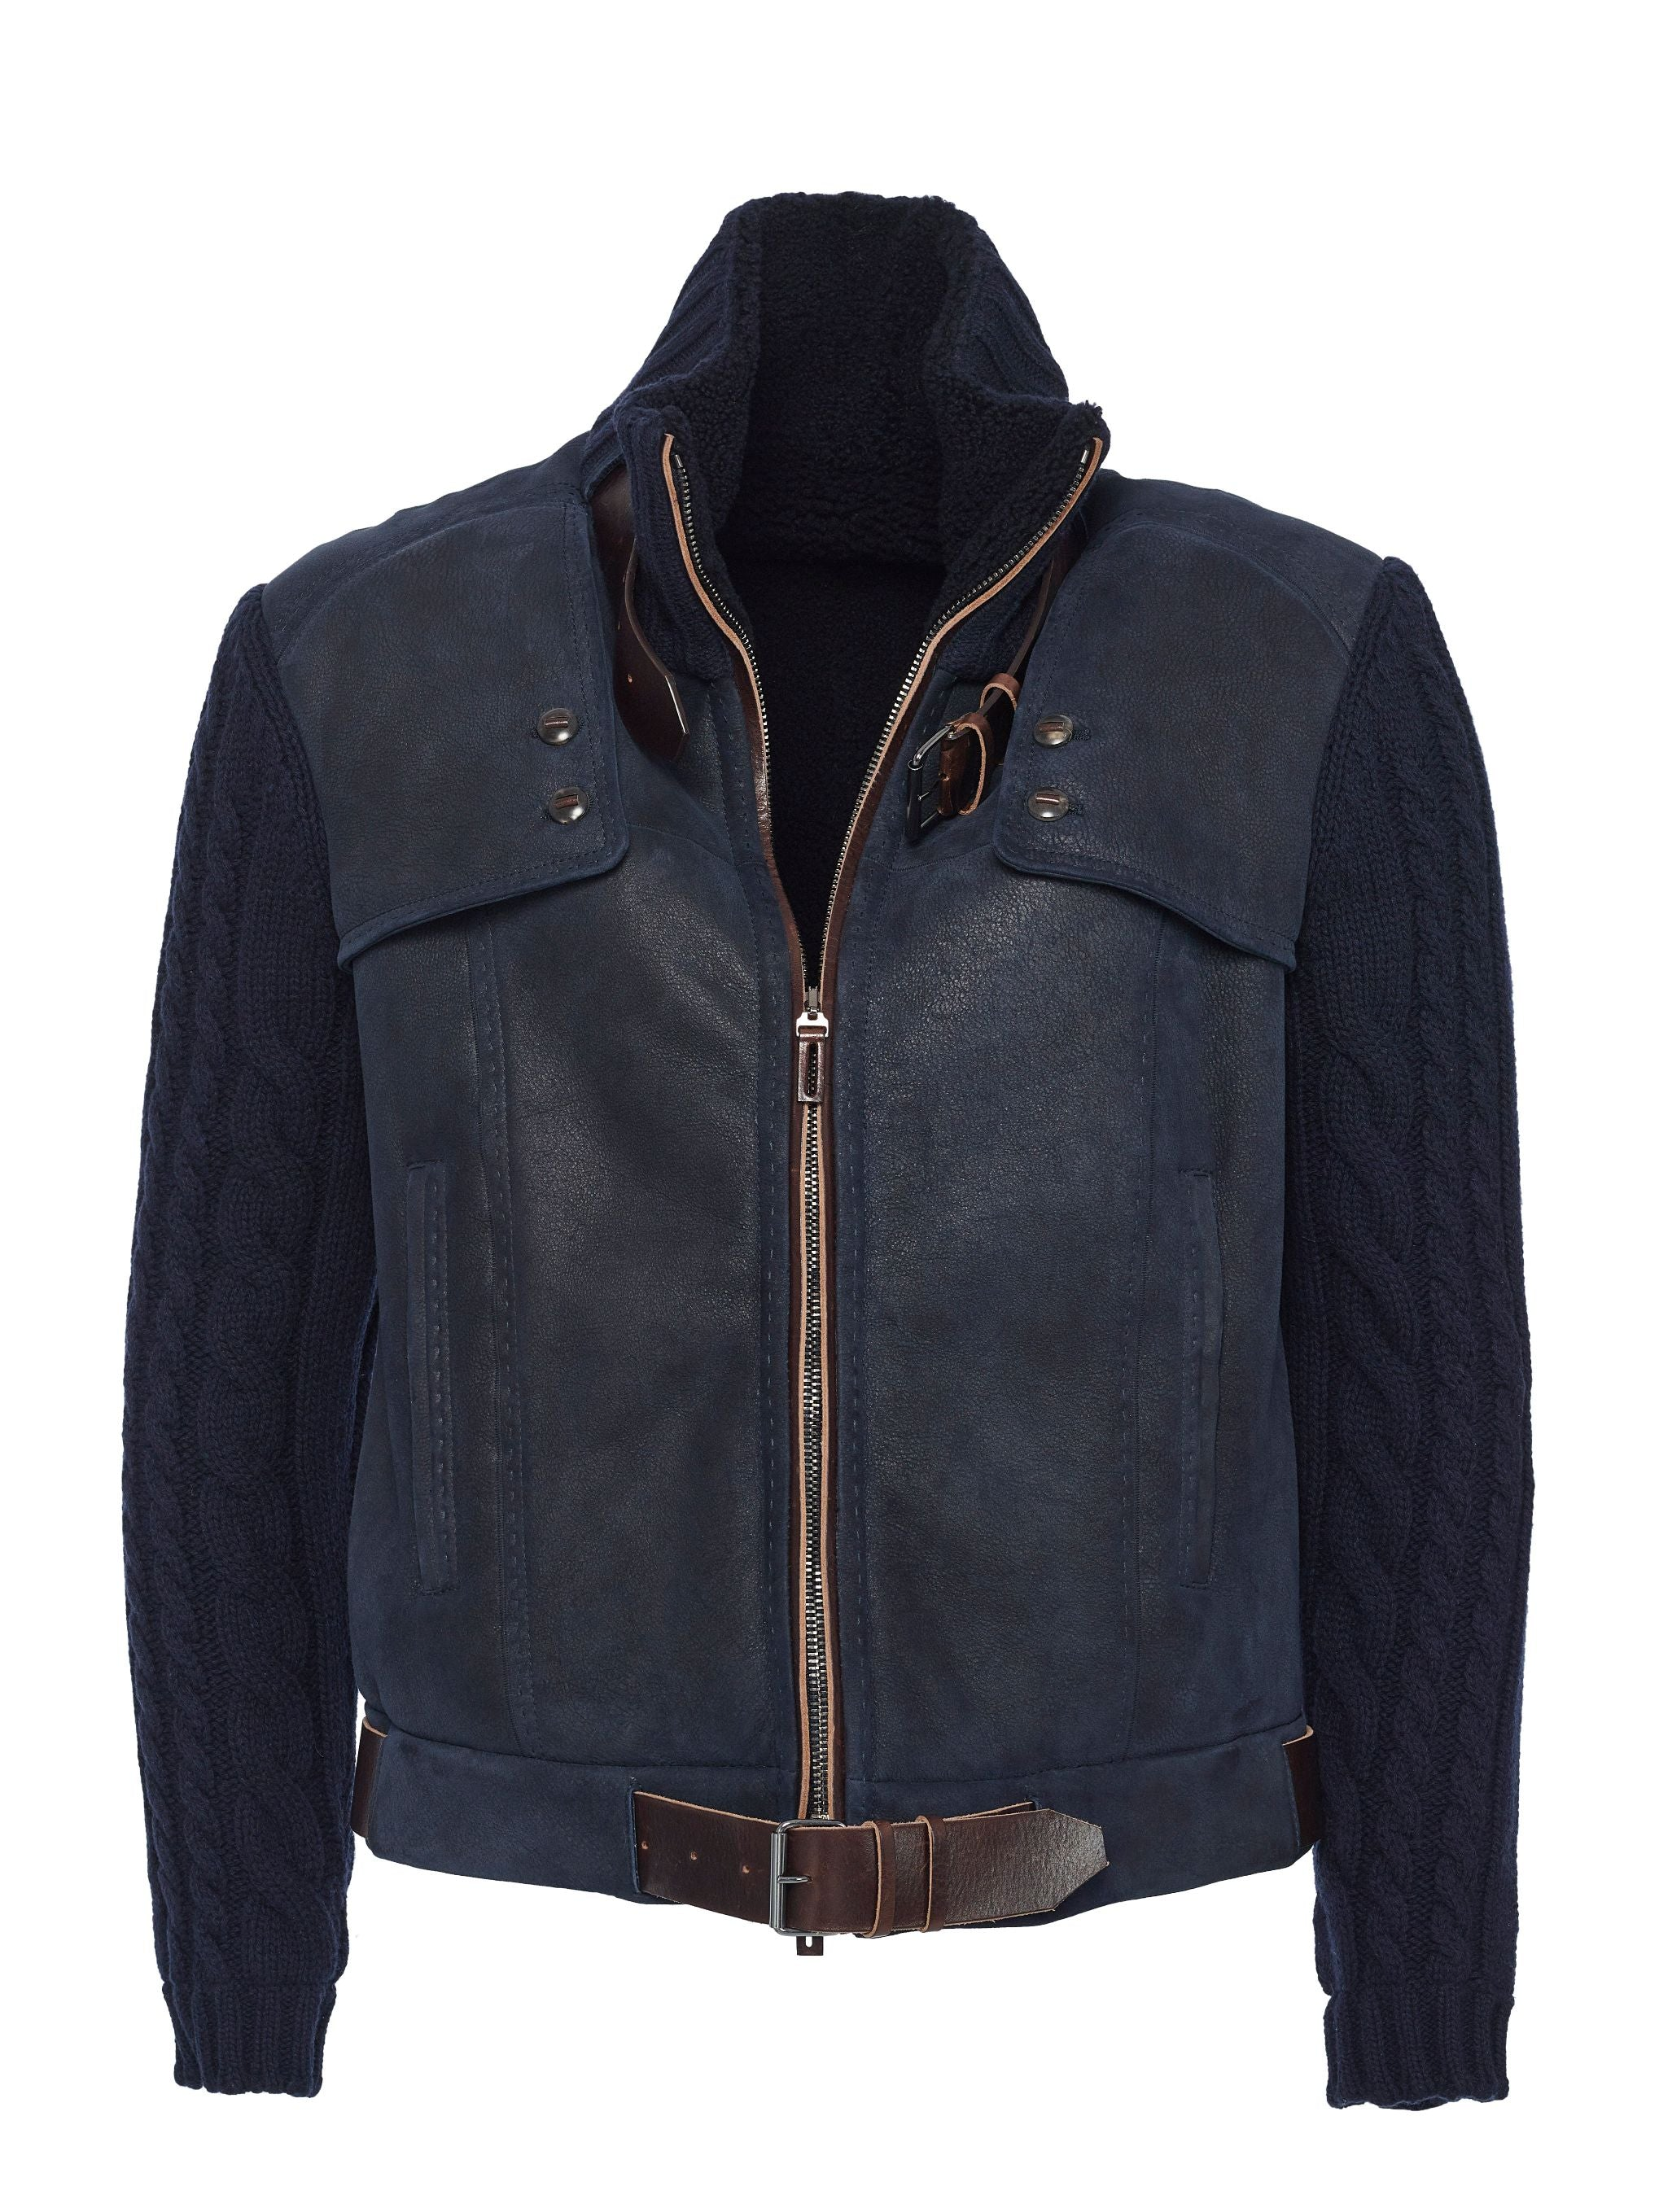 Spanish lamb shearling with cashmere cable knit sleeves and top grain belting leather